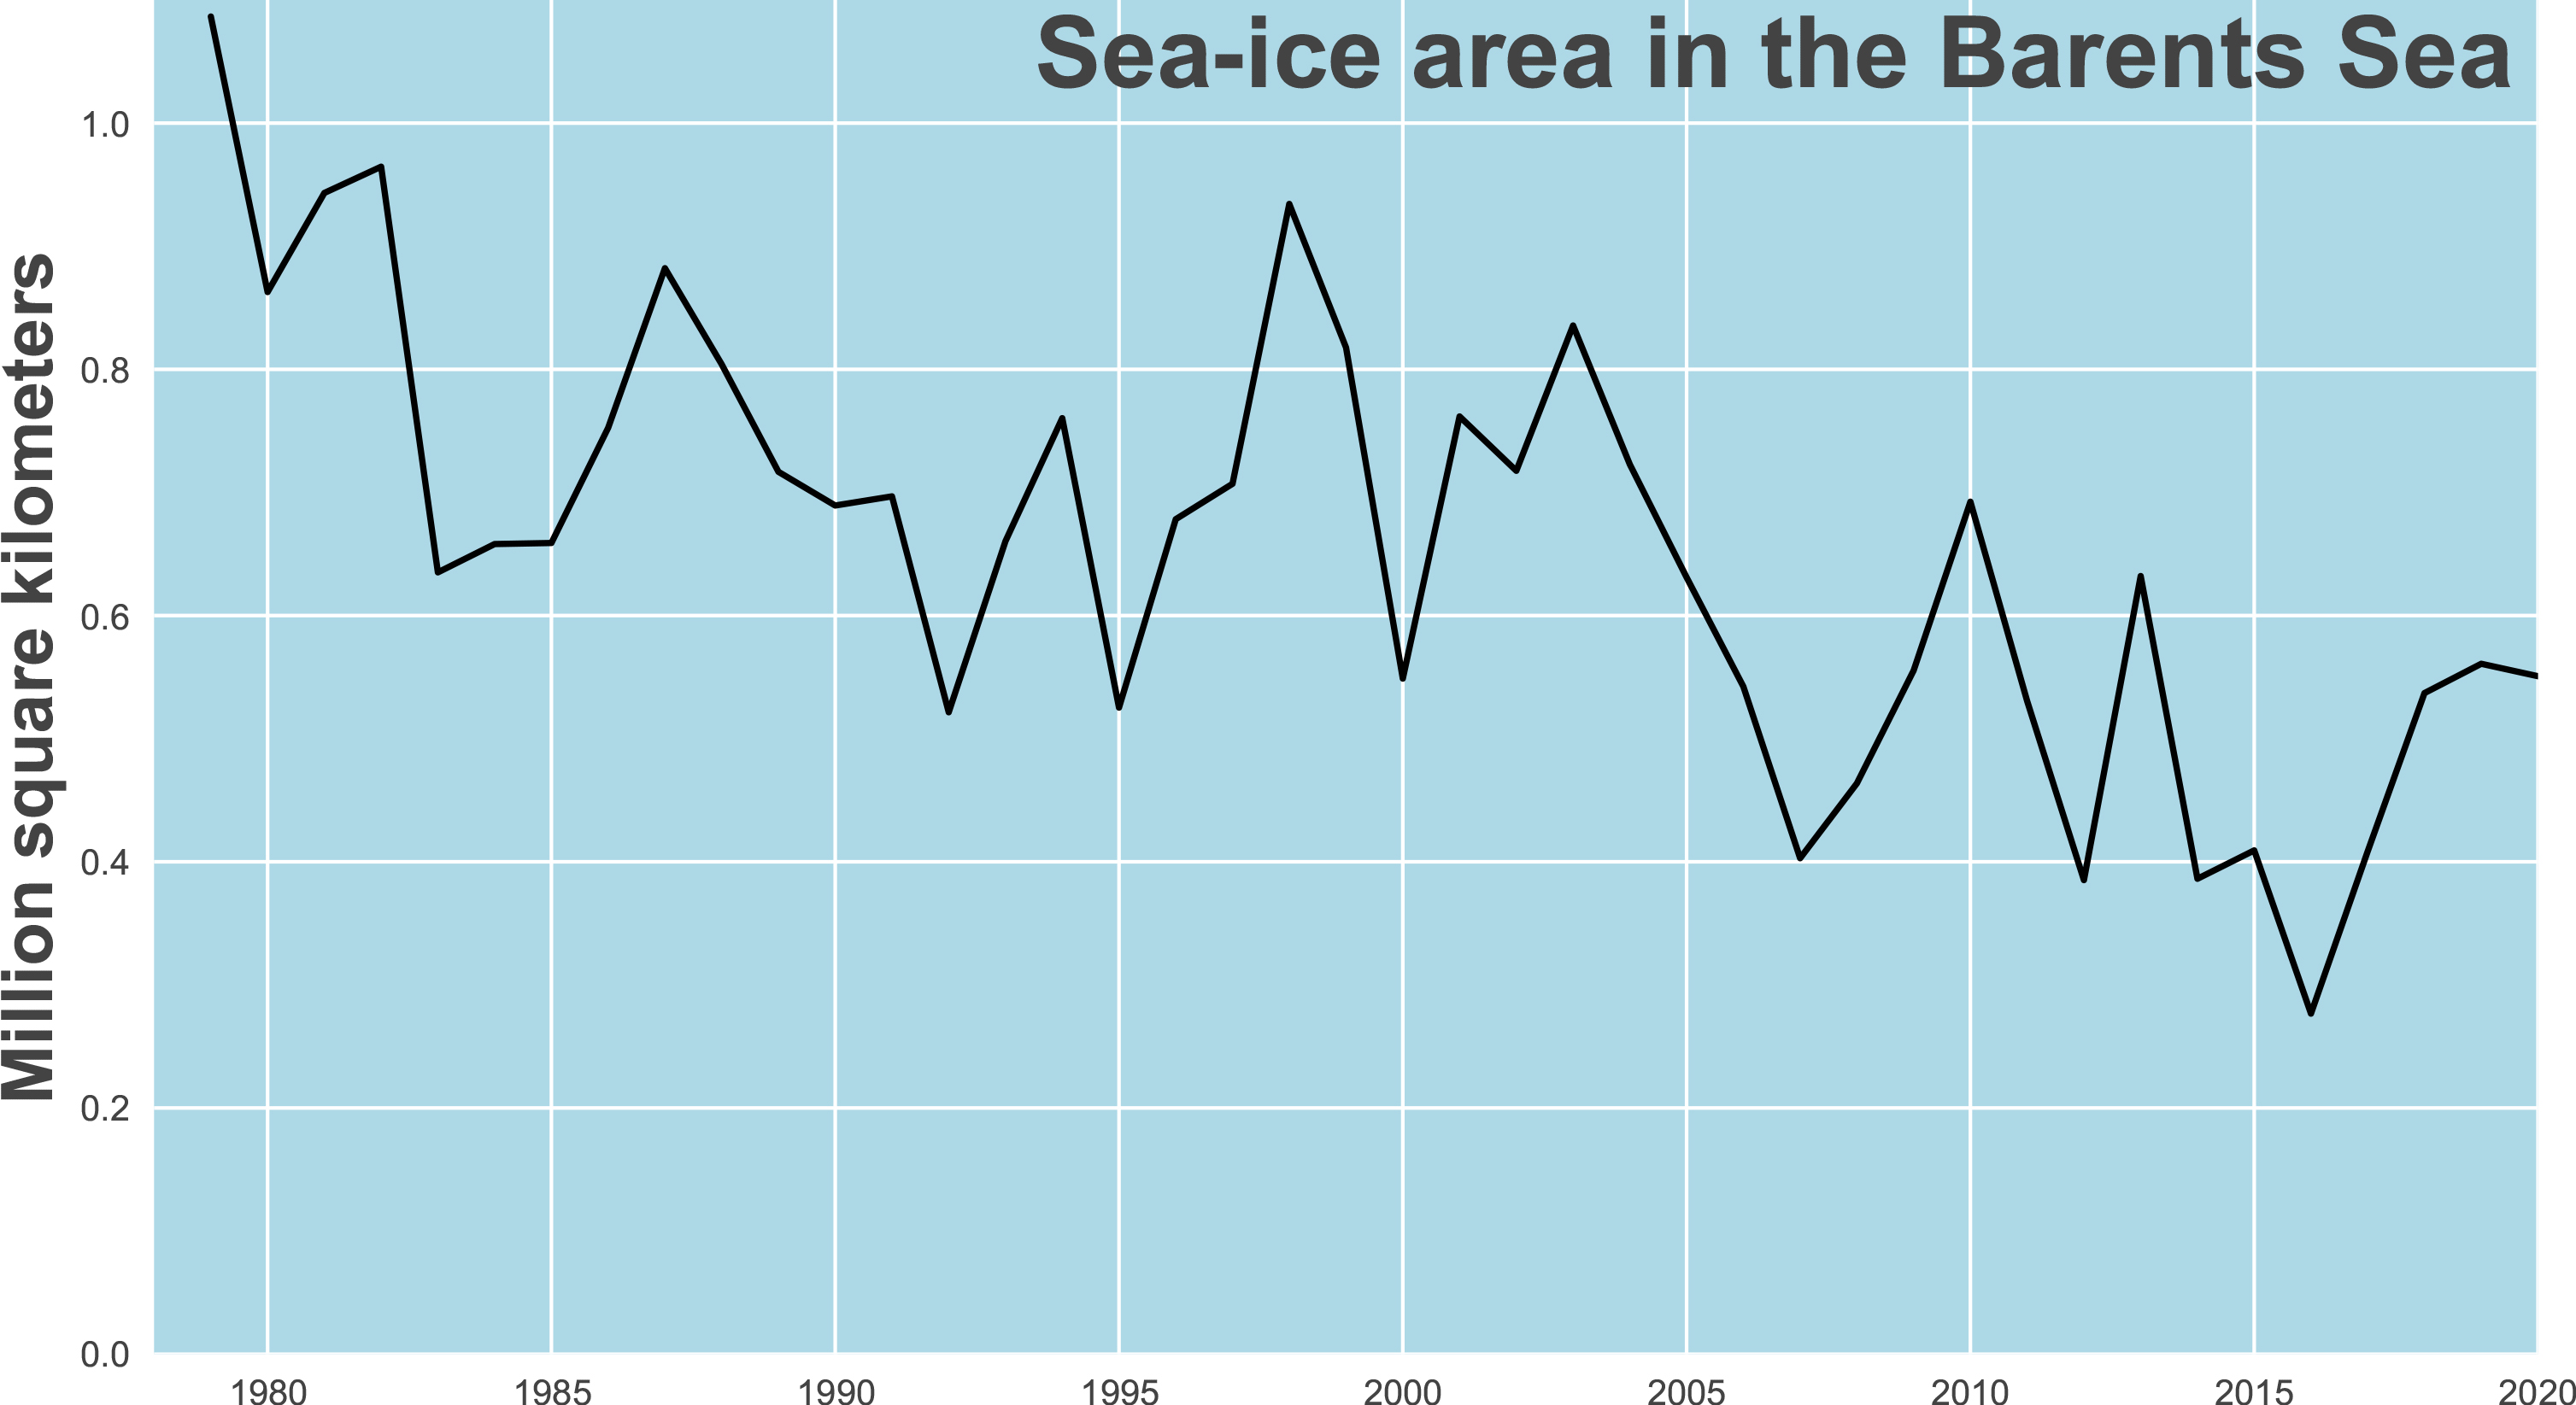 Sea ice area in the Barents sea. The most recent data point here is March 2020. (Ill. Jakob Dörr)